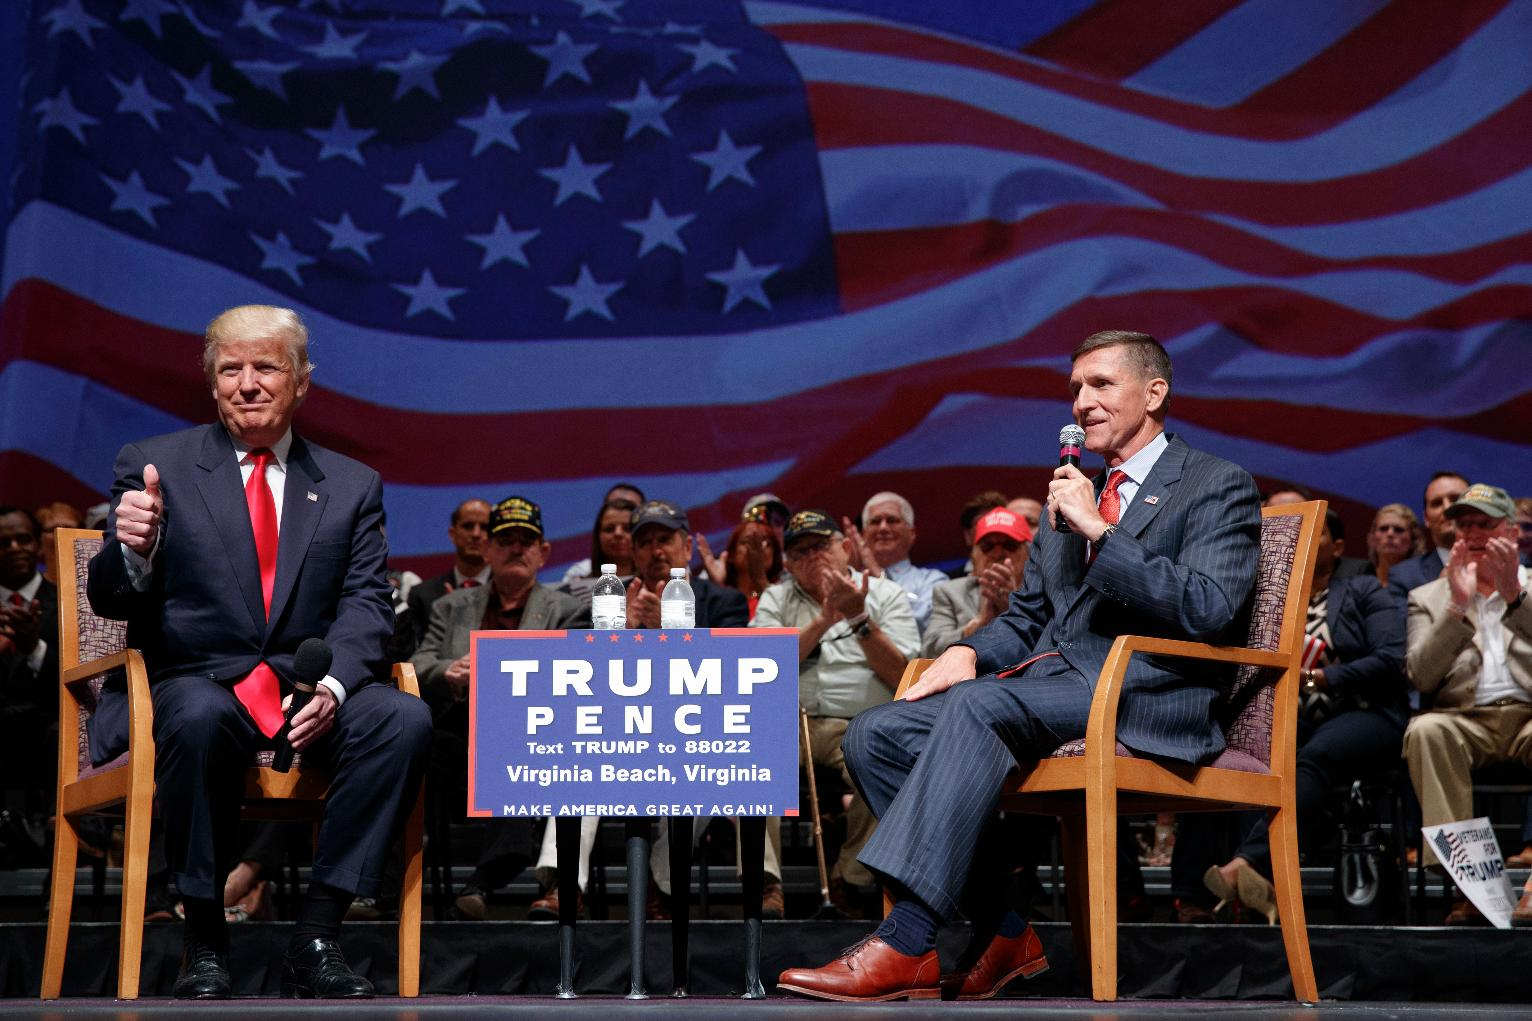 President Trump and Michael Flynn speaking on a stage at a campaign rally